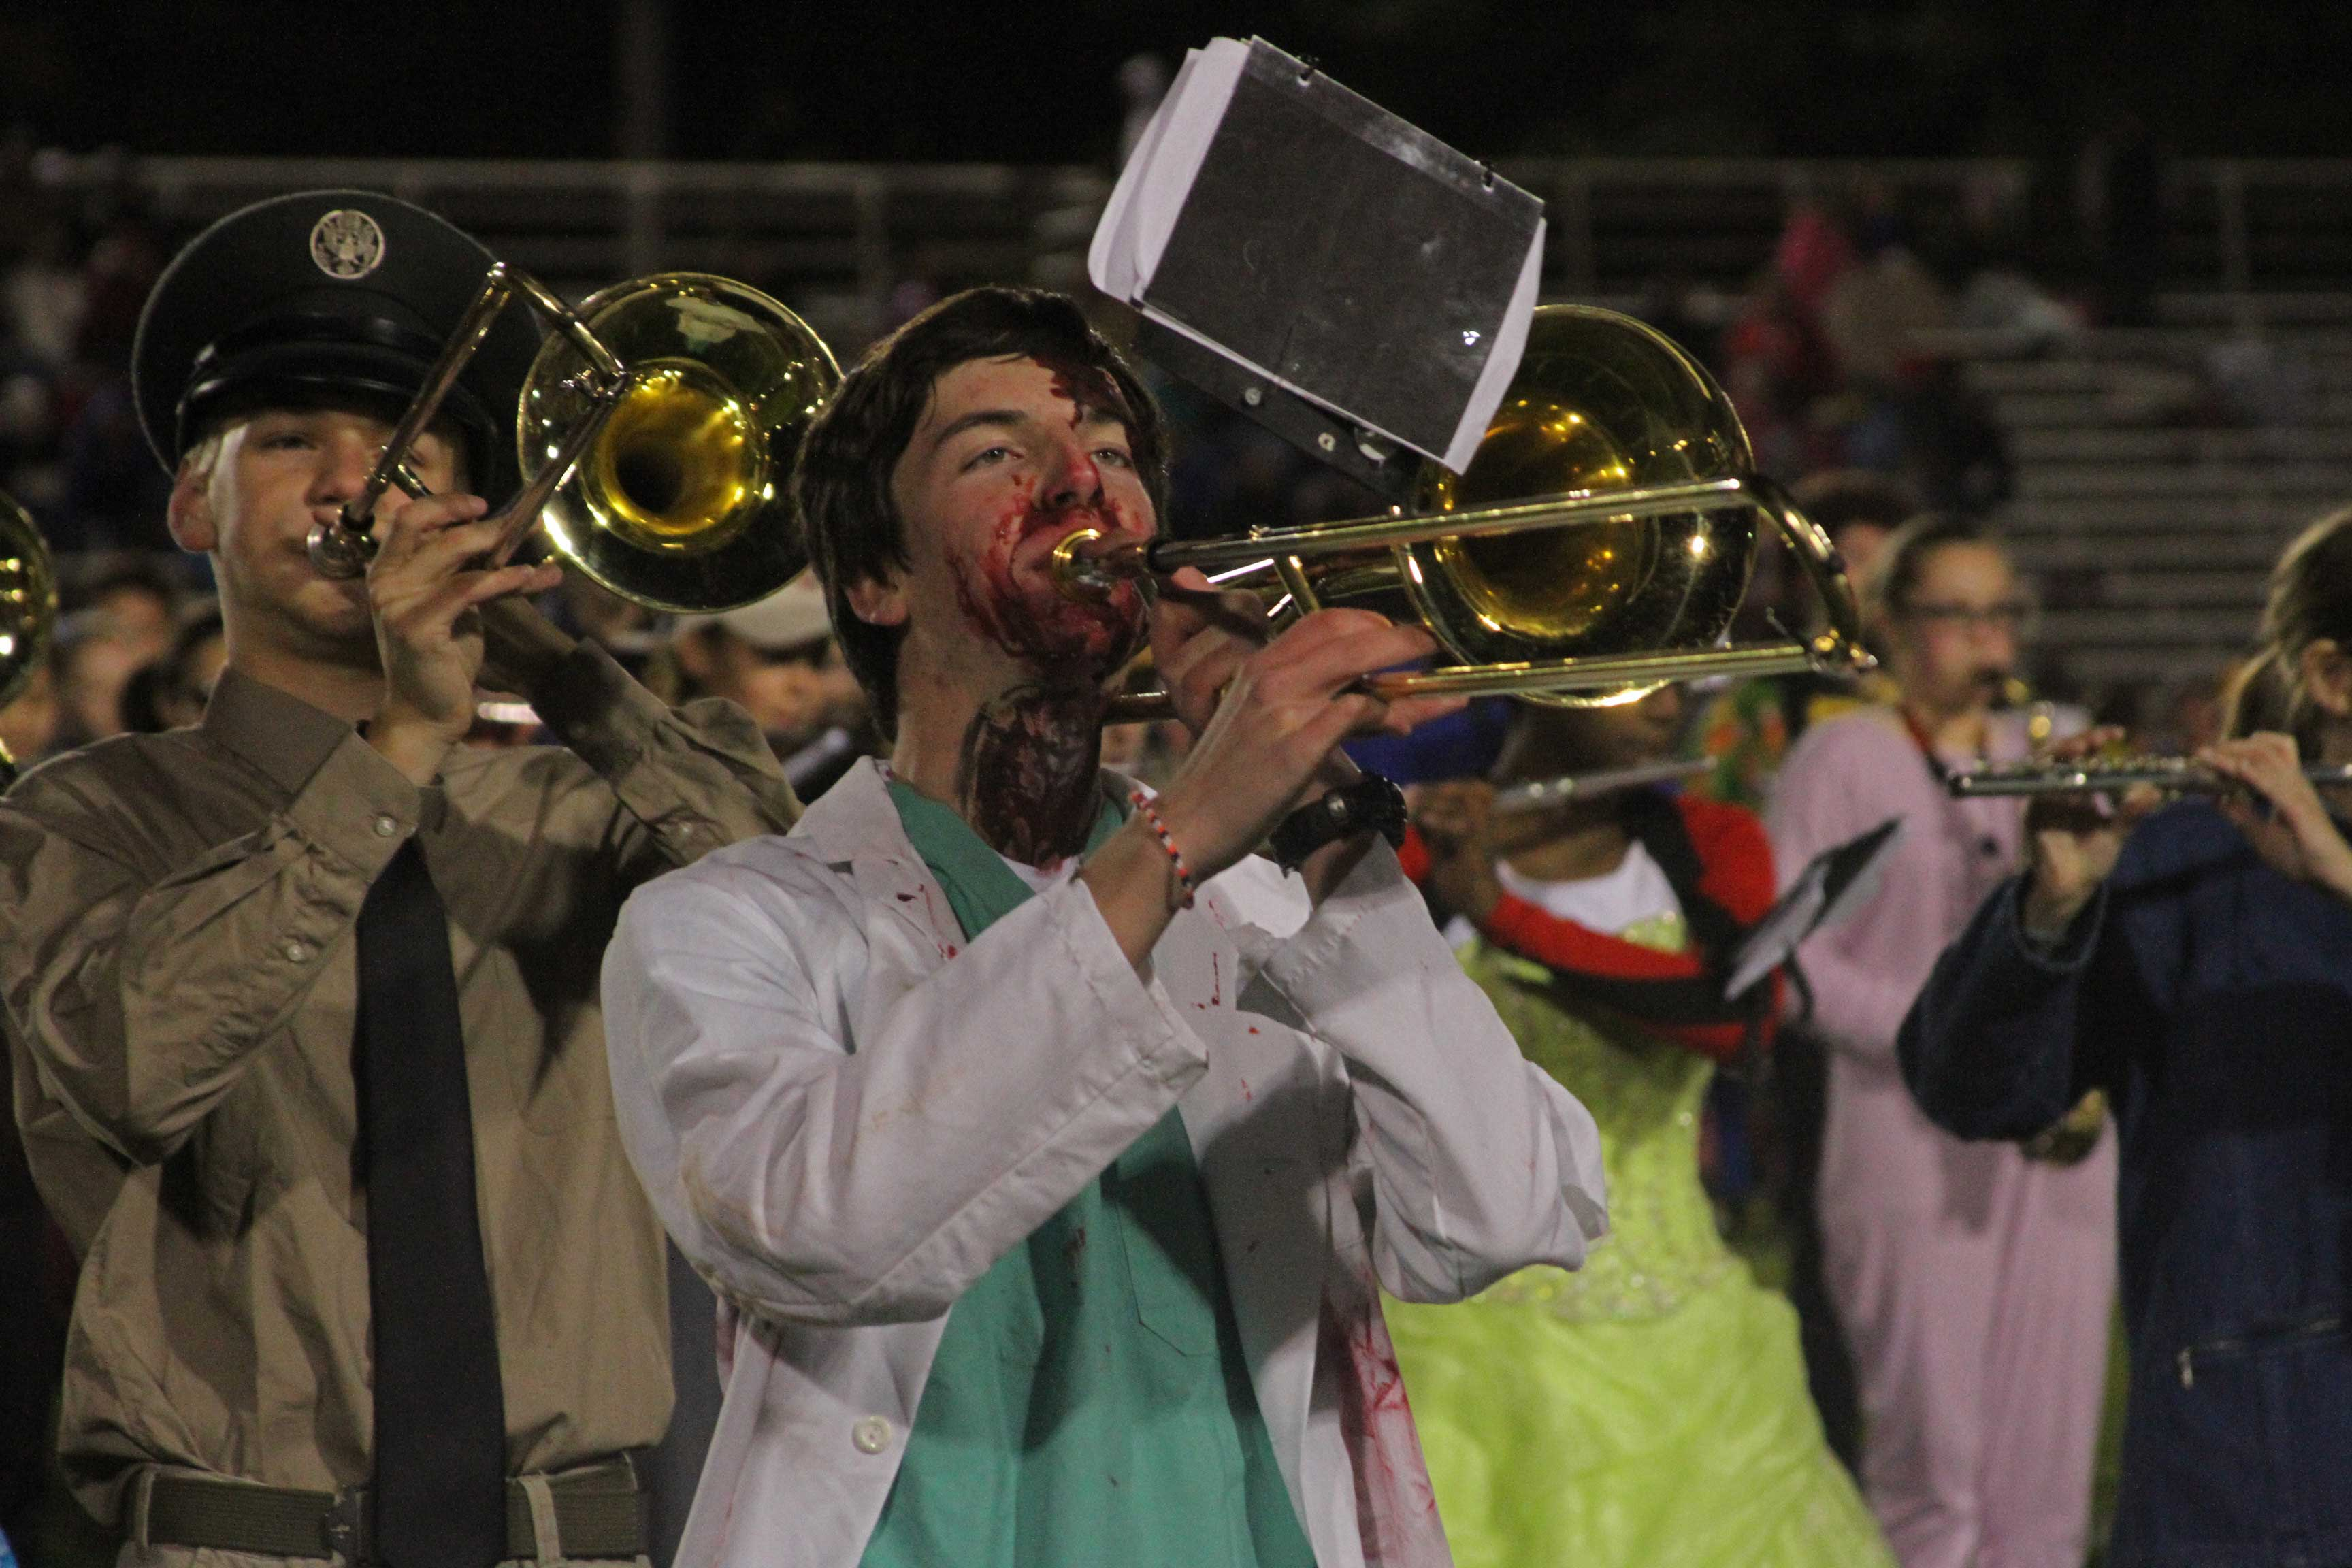 The+Costumed+Joseph+Stoltz+%2717+performs+during+the+halftime+show.